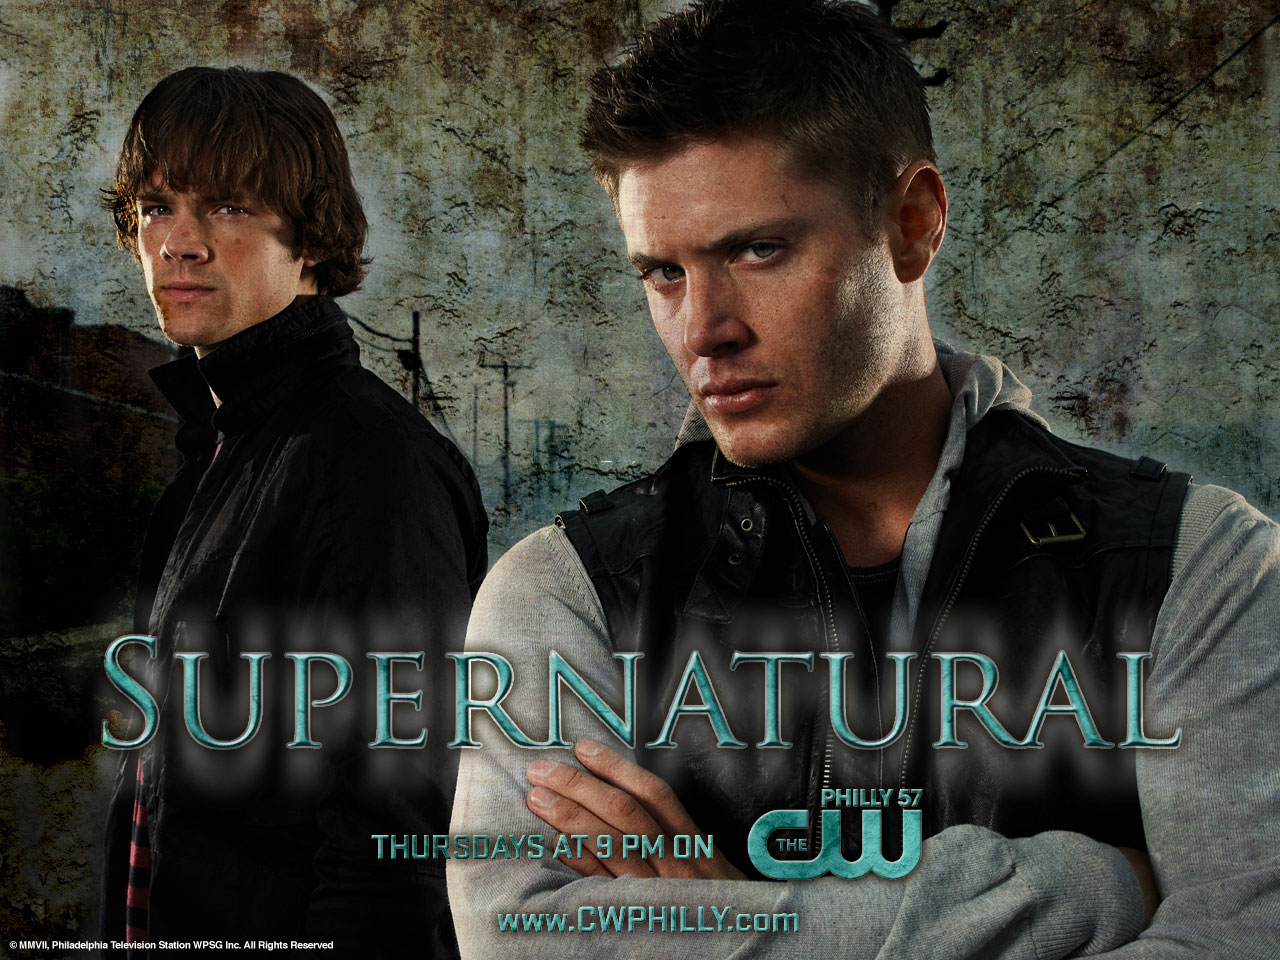 my review =): Supernatural Season 1